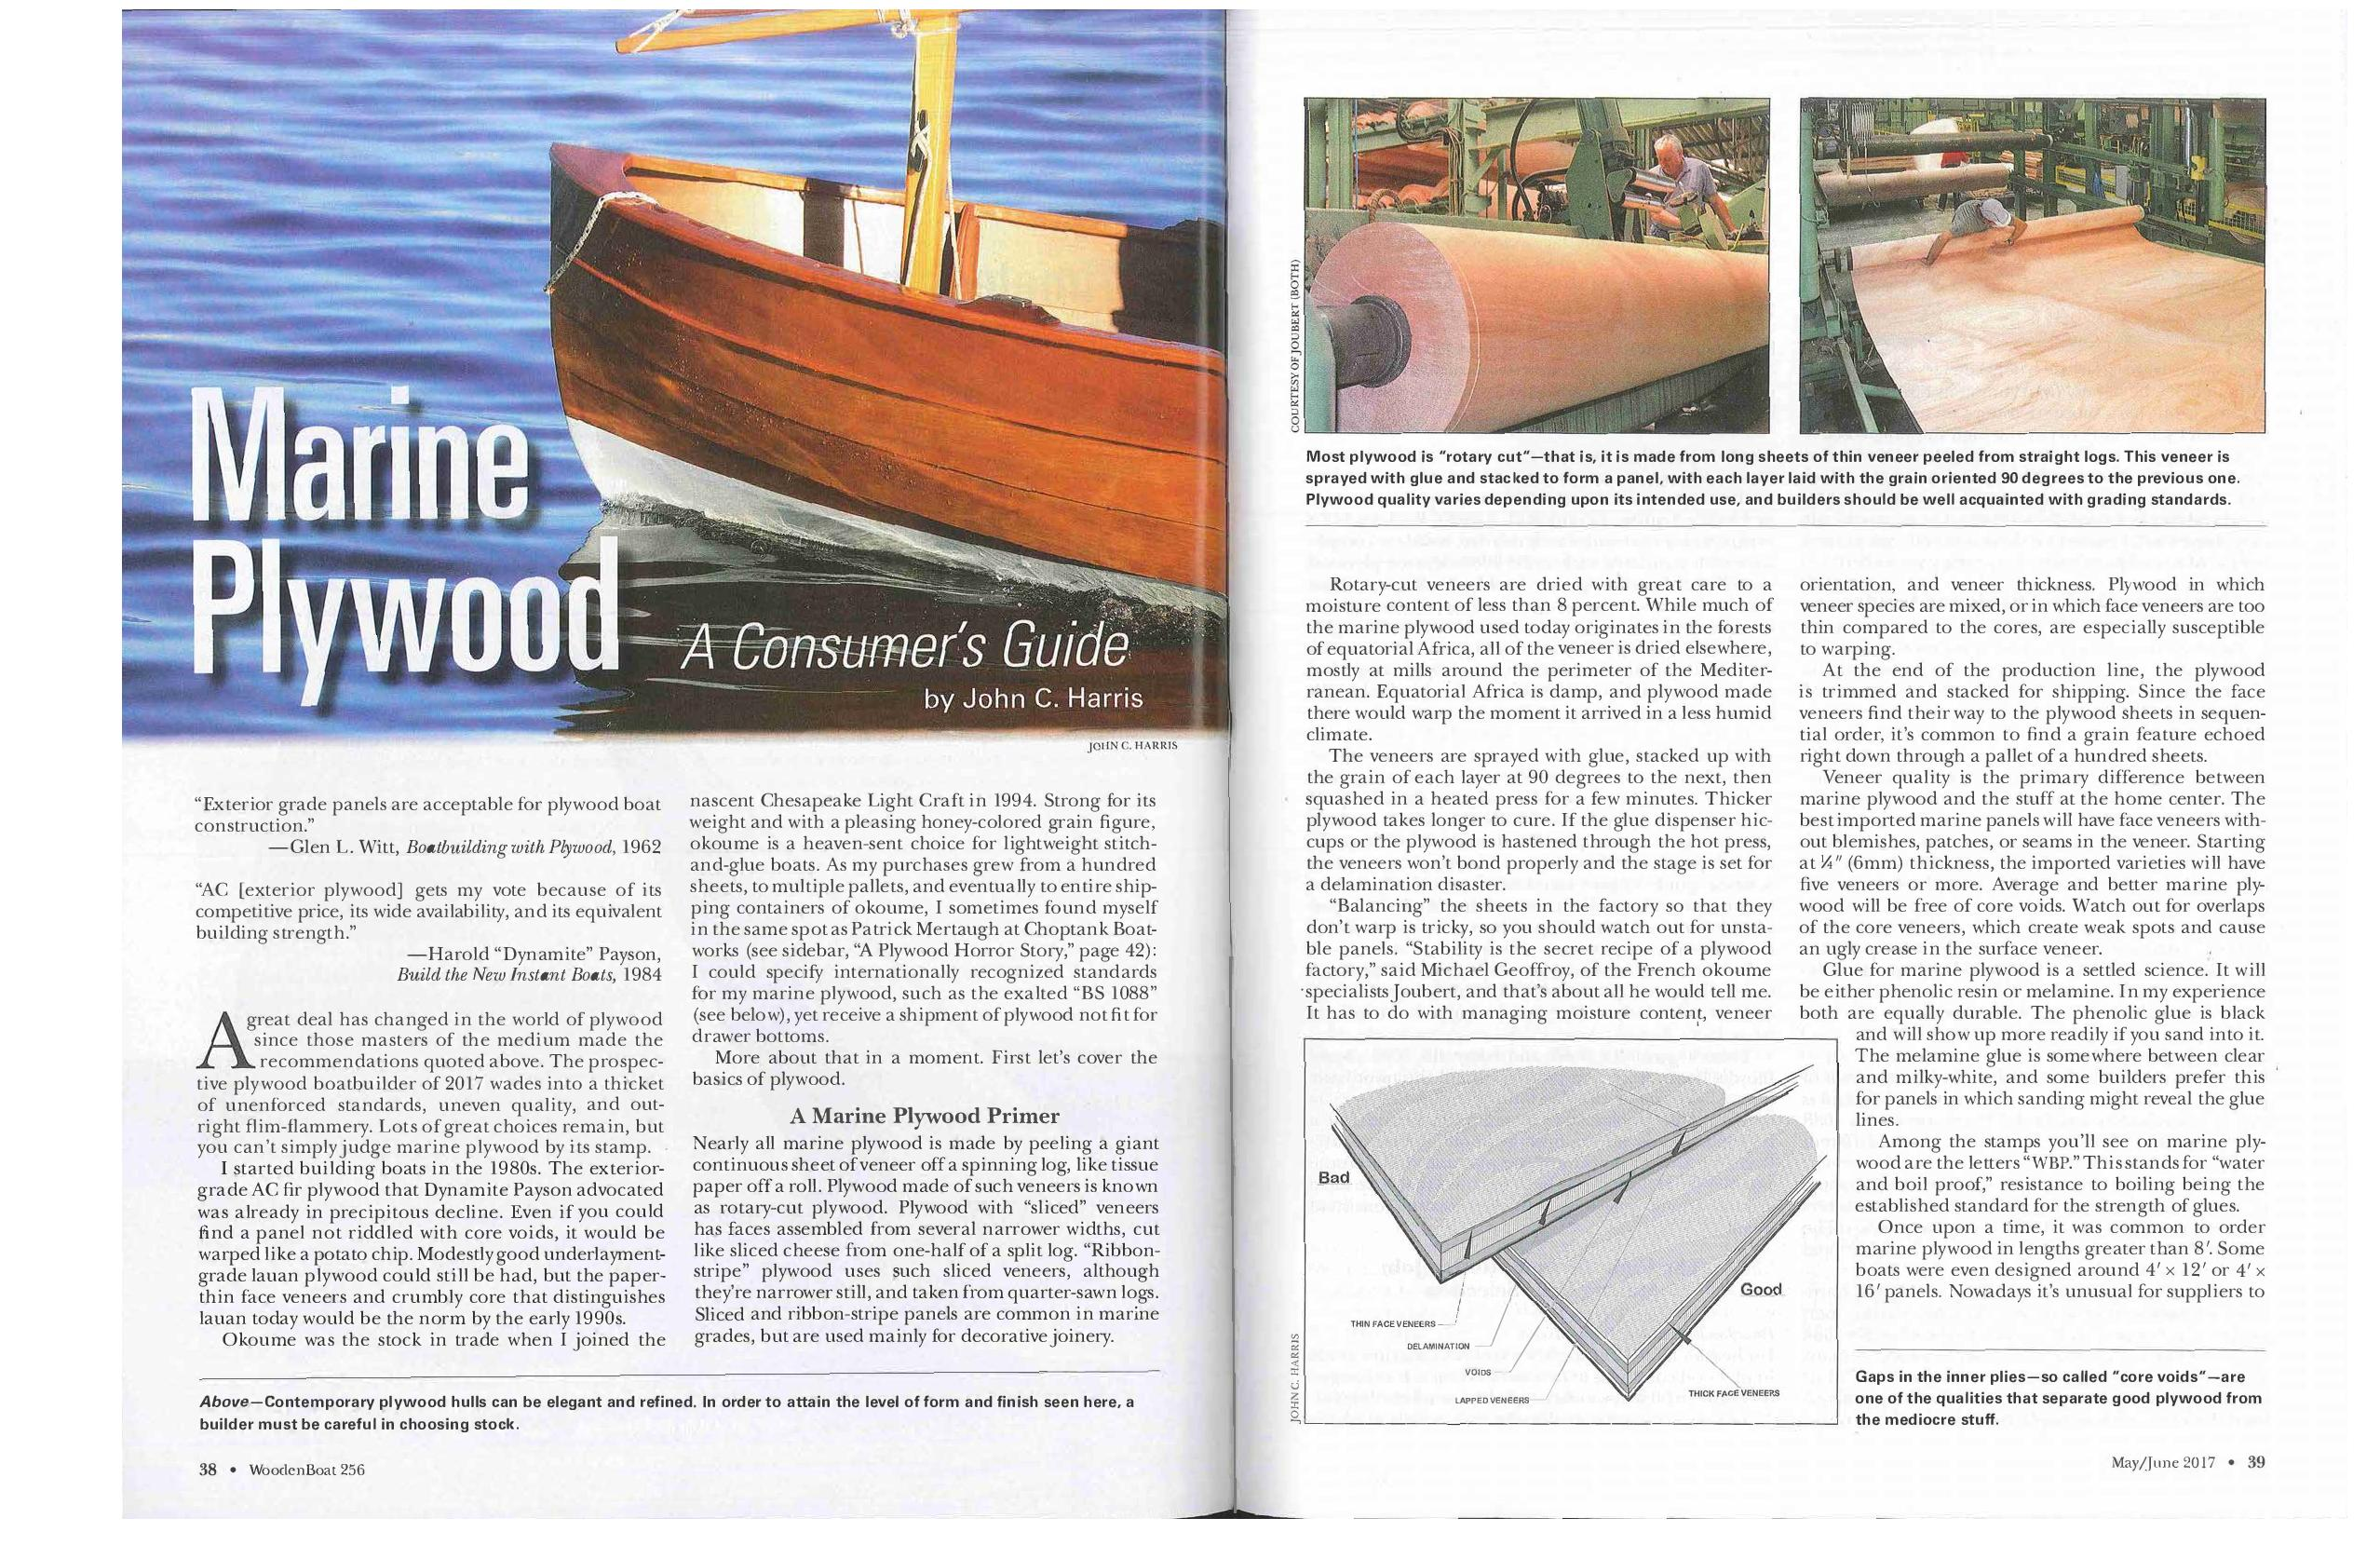 Woodenboat Magazine 256 Marine Plywood A Consumers Guide